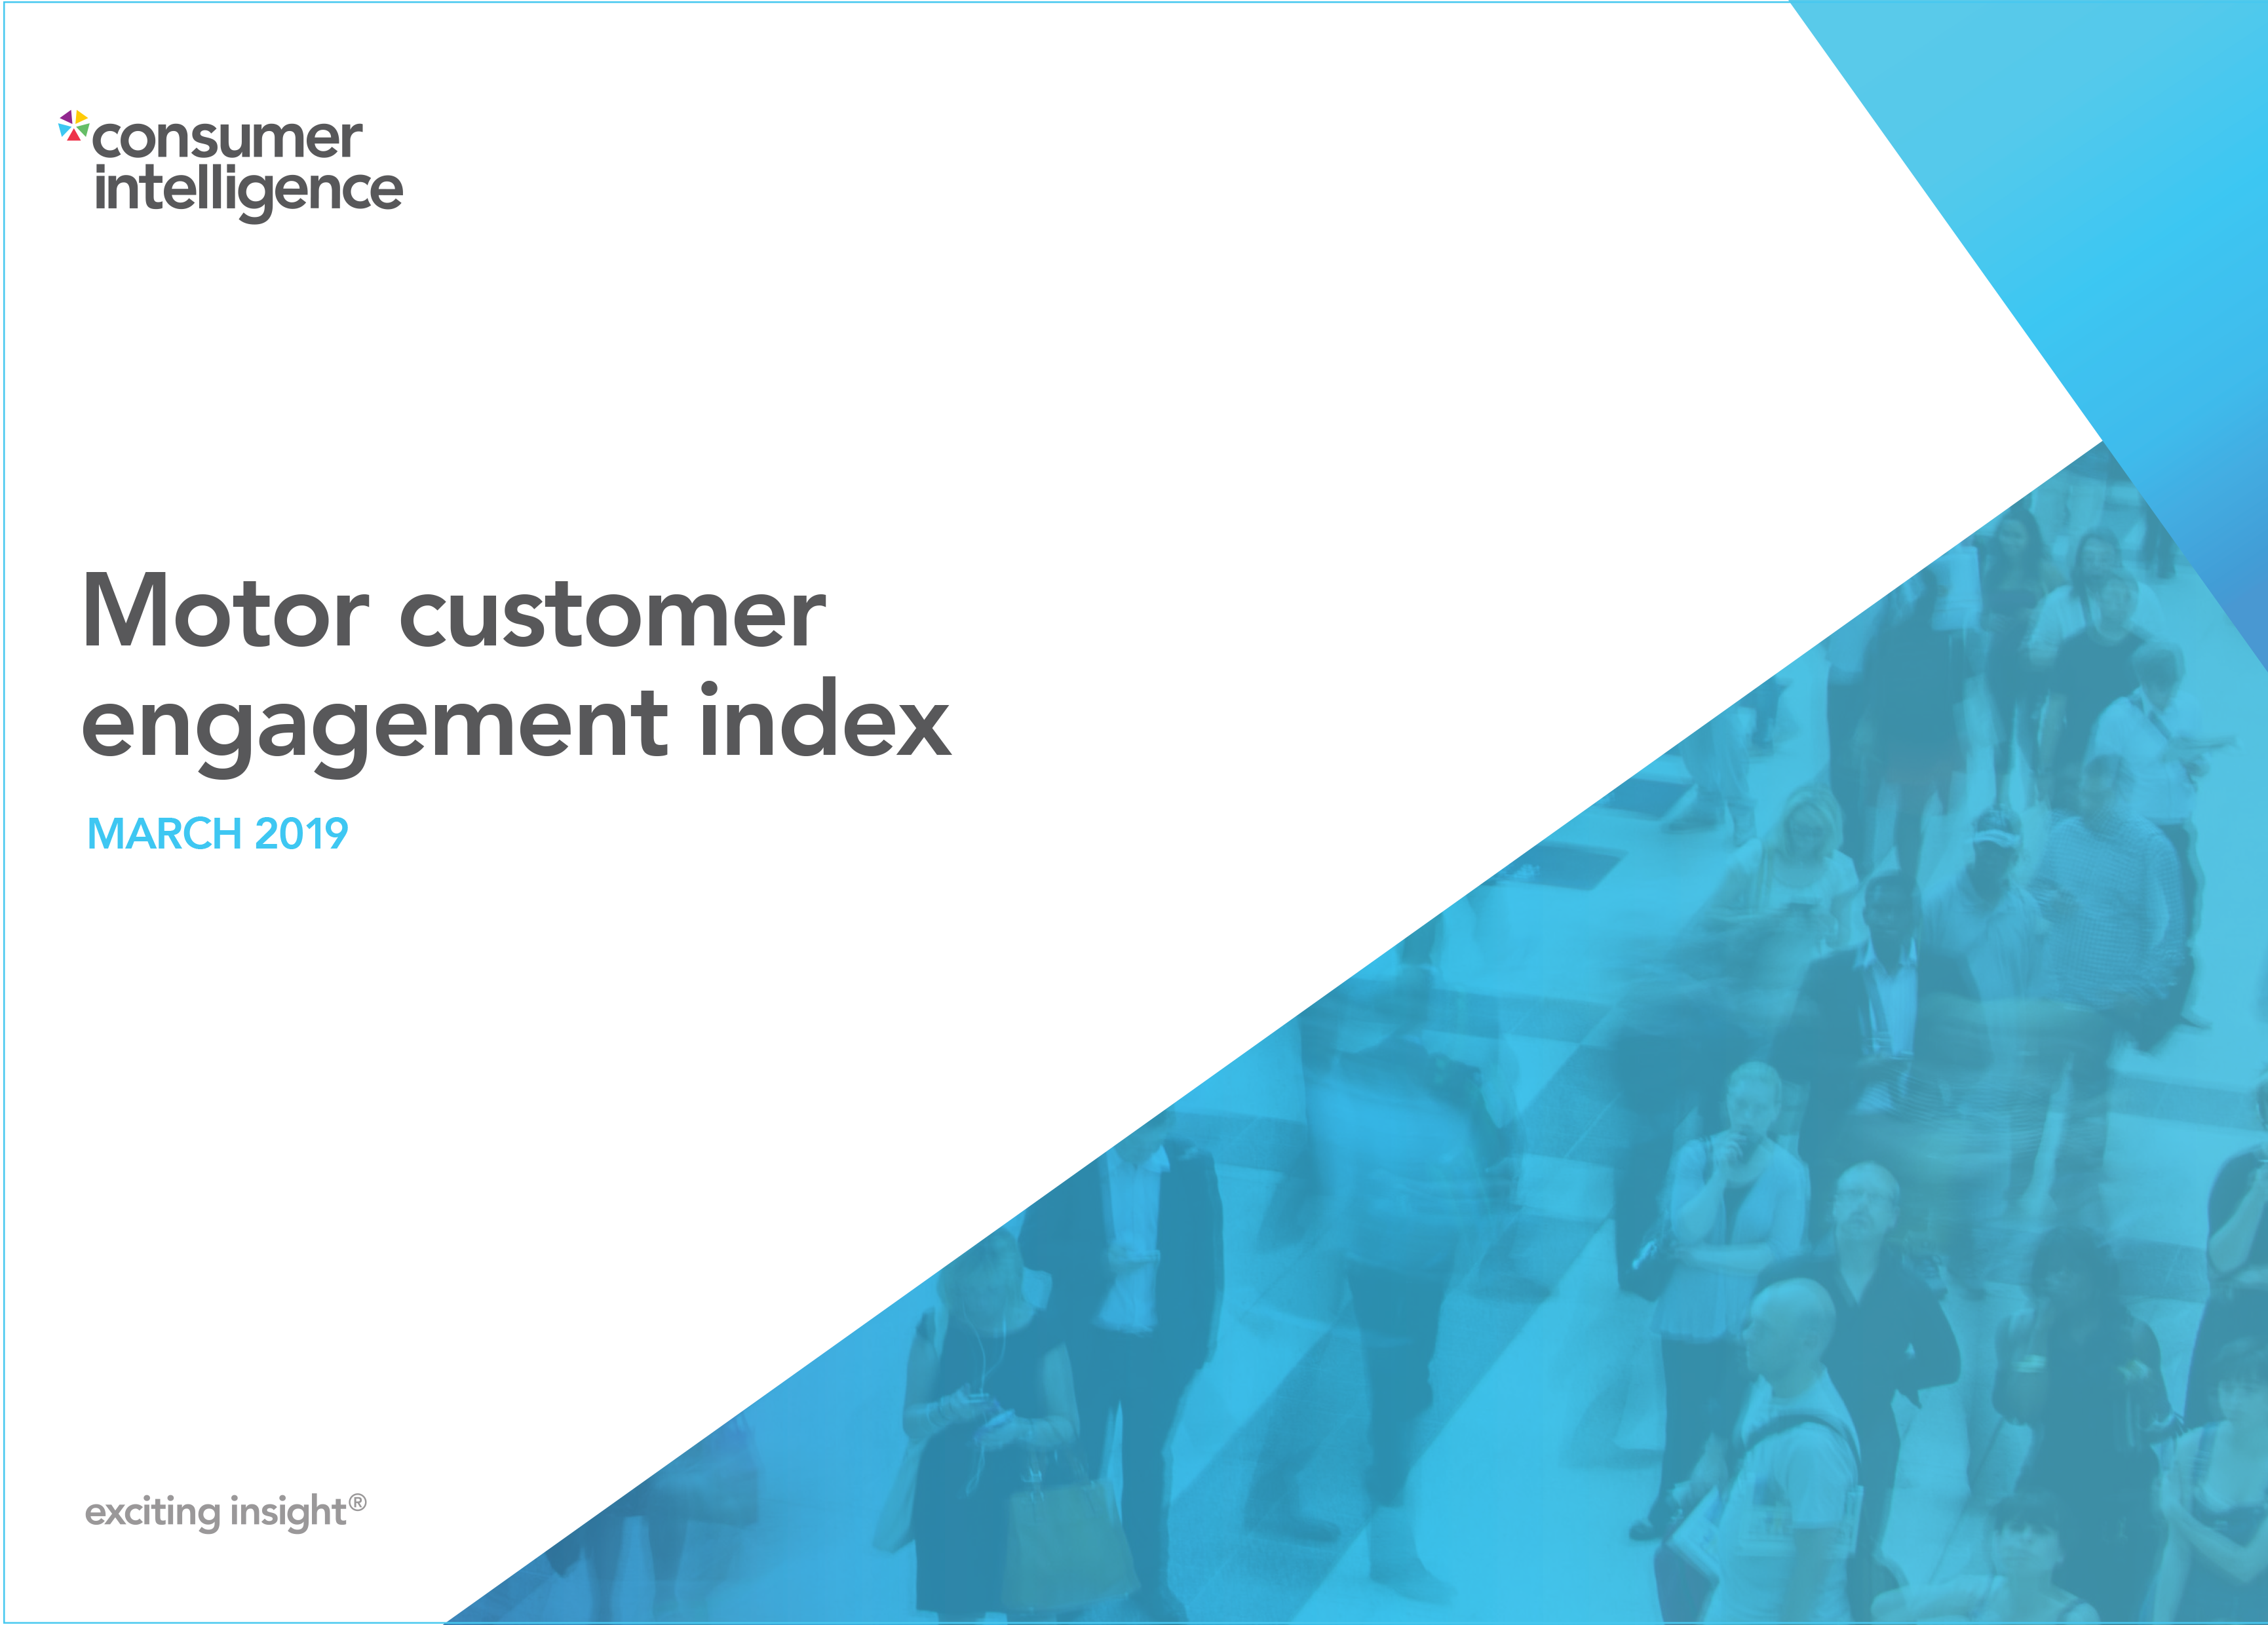 Motor_customer_engagement_index_march19-1 cover outline